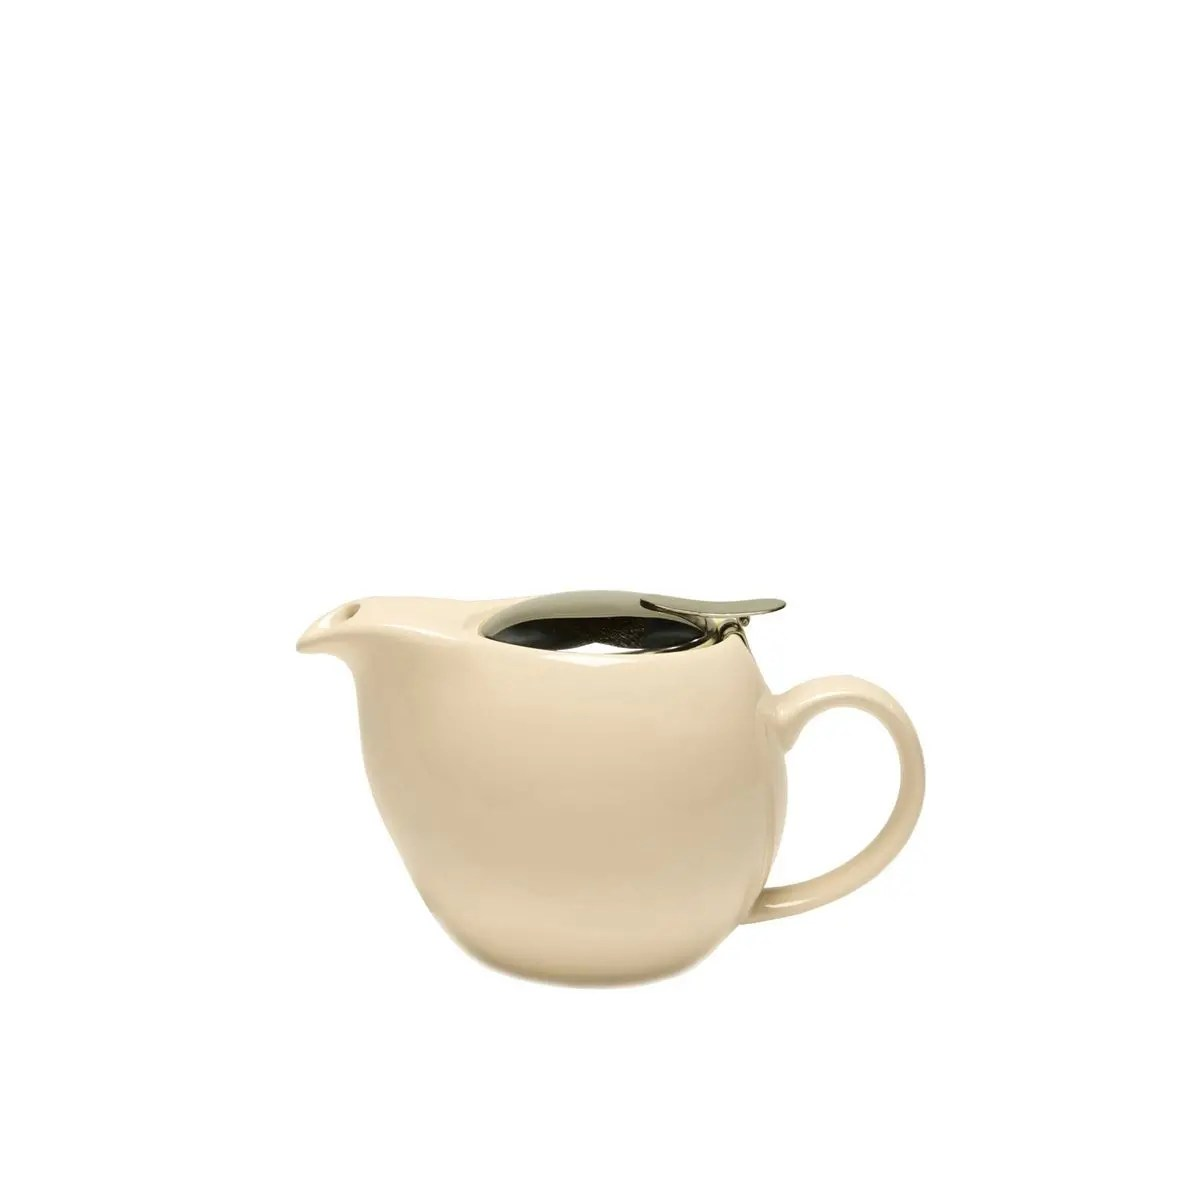 Ceramic Teapot With Infuser Service Ideas Tpcv16cm Oval Cream Ceramic Teapot With Lid